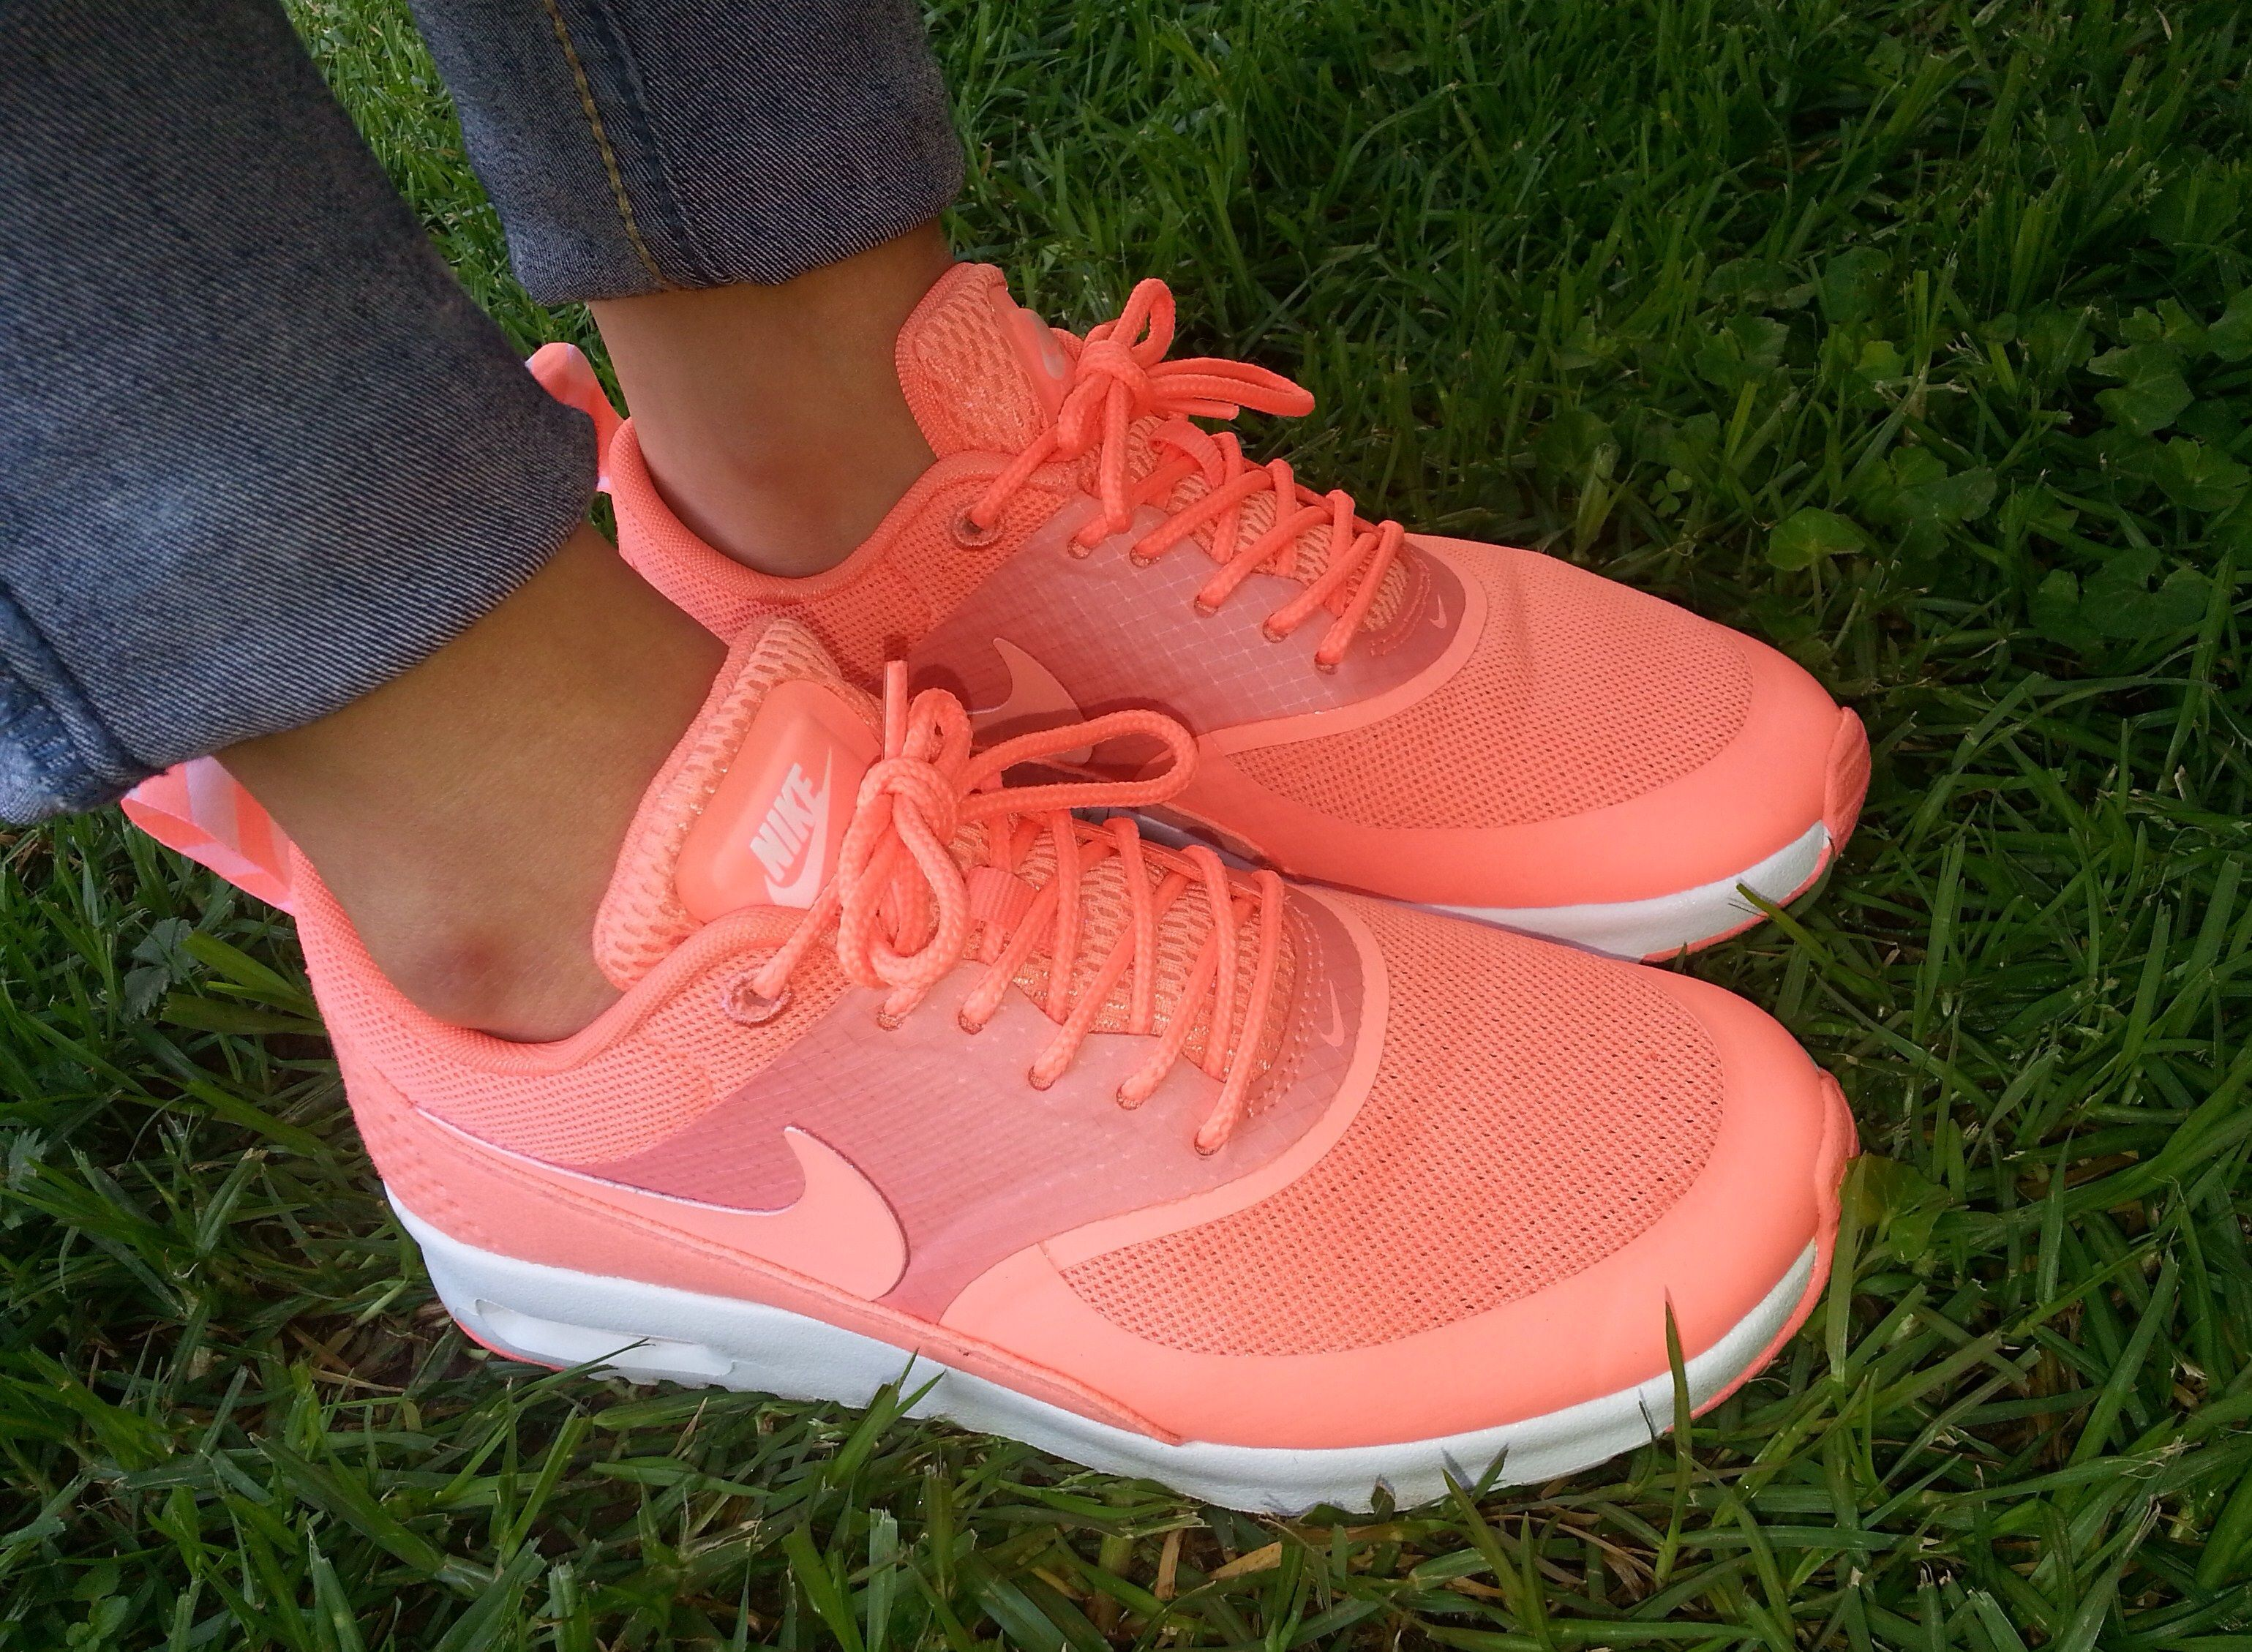 Love my nike Thea's so comfy and color so cool